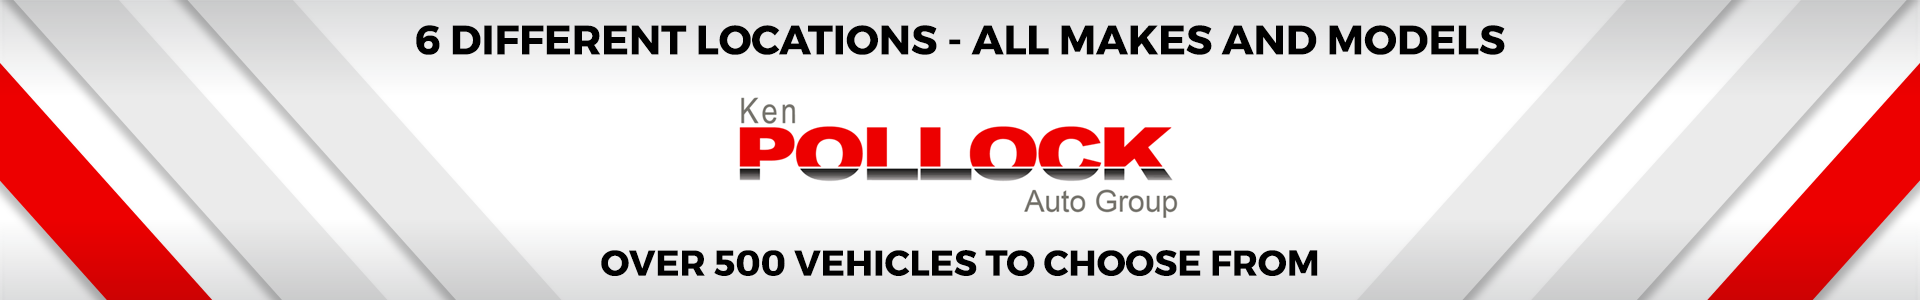 Ken Pollock Auto Group Nepa S Most Trusted Auto Group